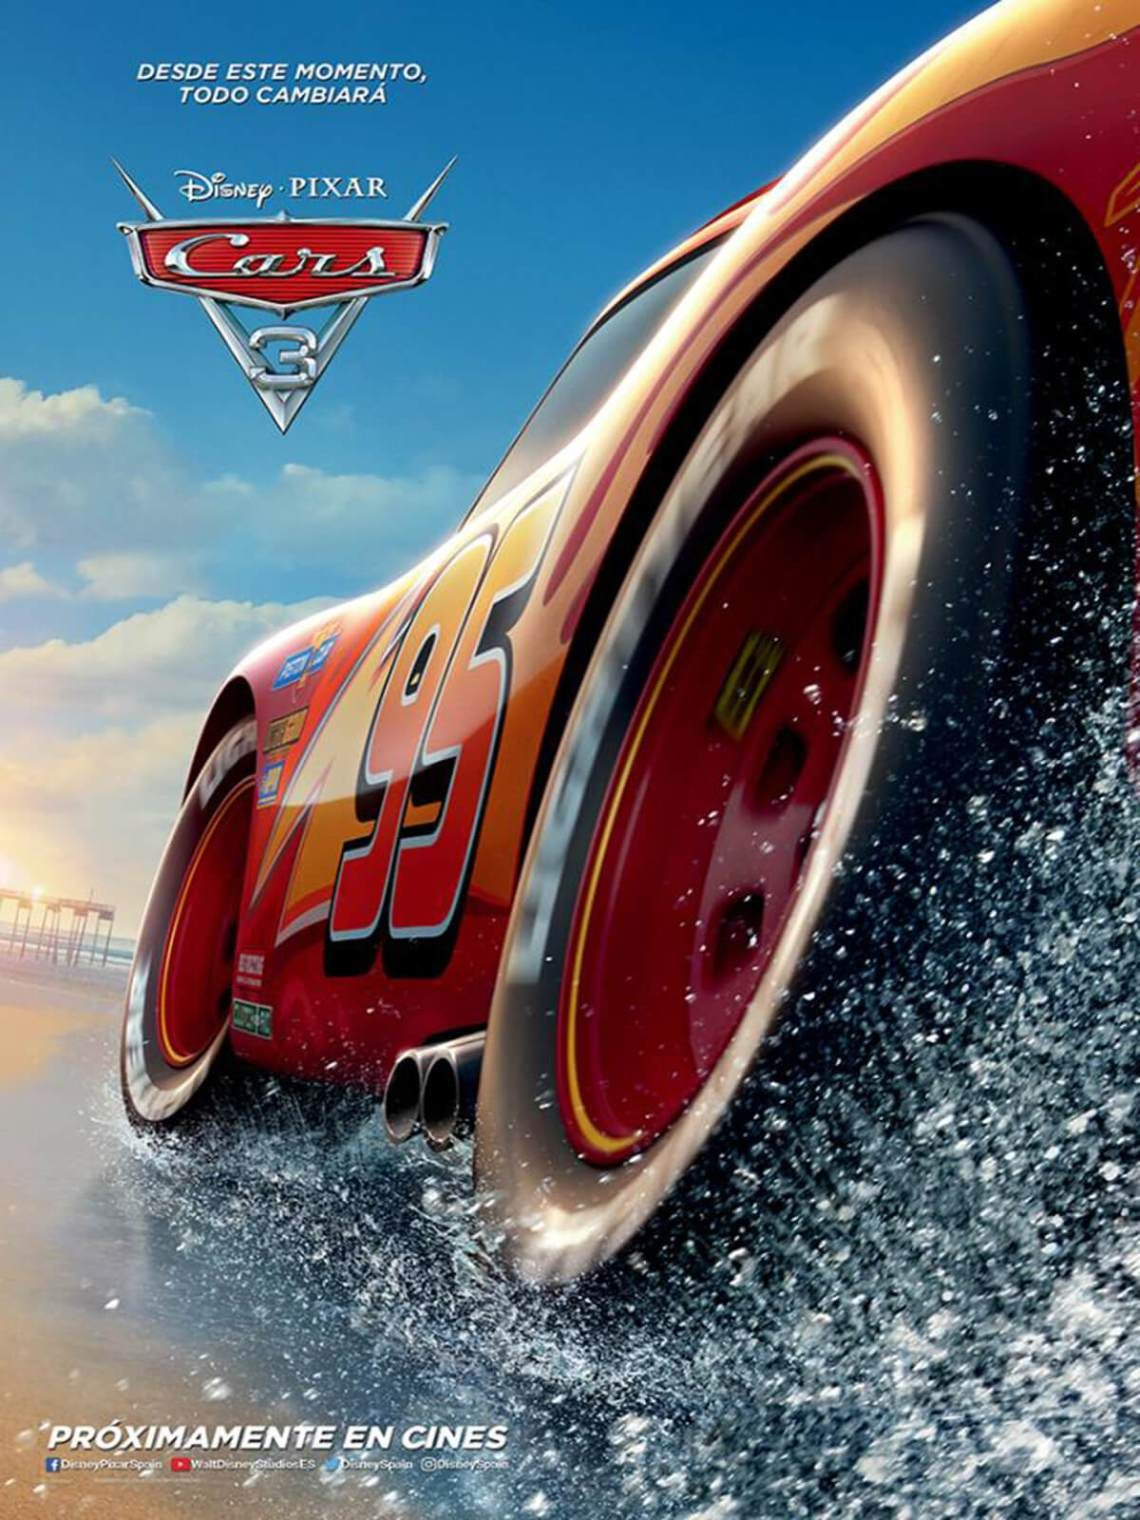 cars 3 poster  Cars 5 (5) - Poster 5 | Cars 5 full movie, Streaming ...